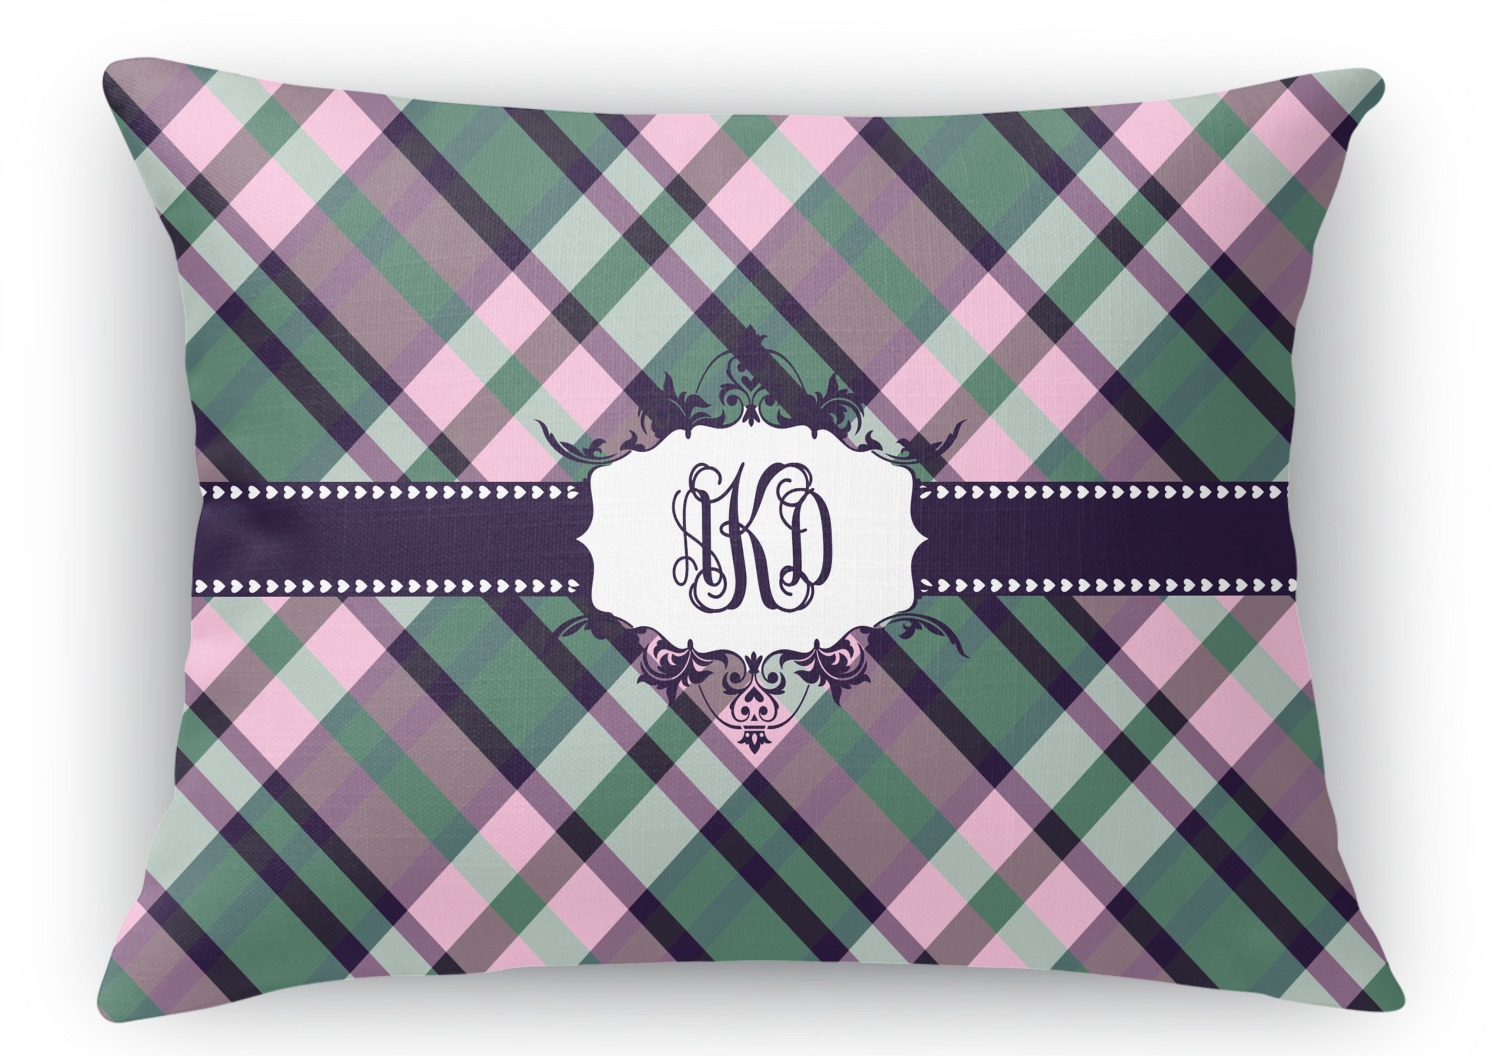 Rectangular Throw Pillow Dimensions : Plaid with Pop Rectangular Throw Pillow - 18